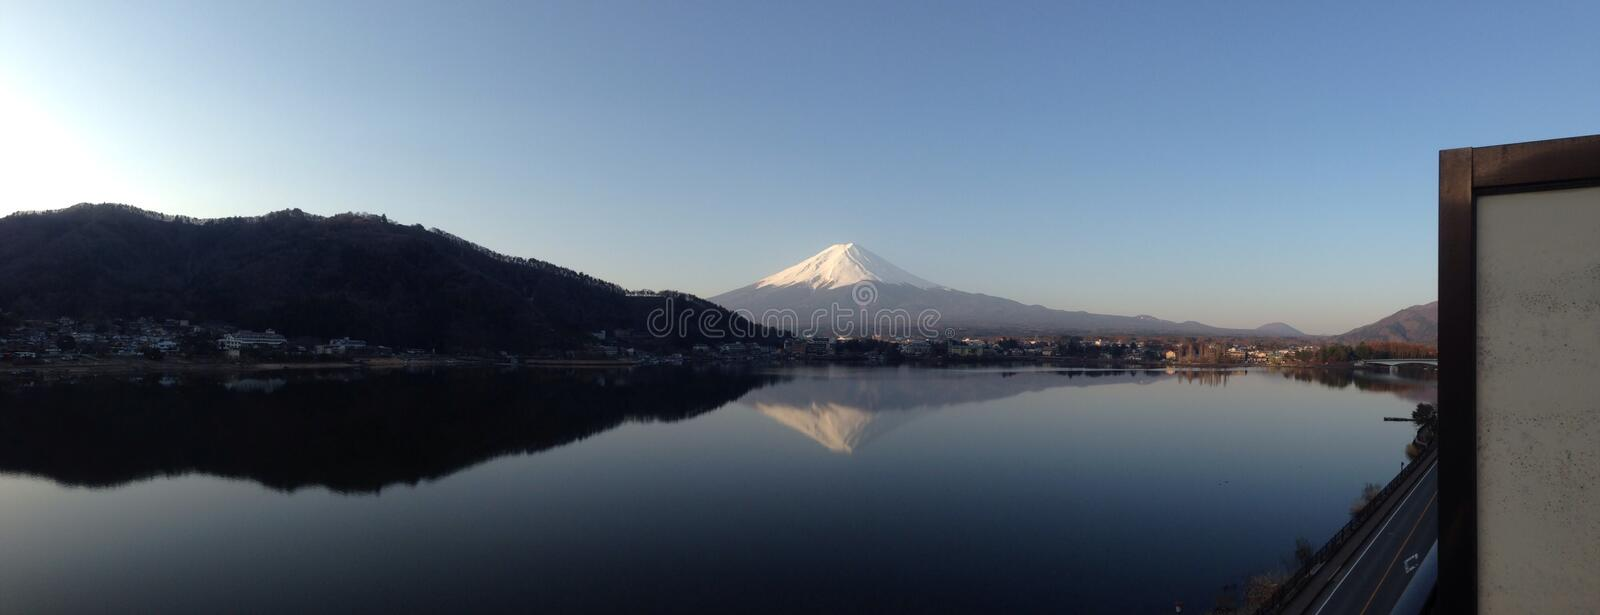 Mt Fuji (panoramique) photographie stock